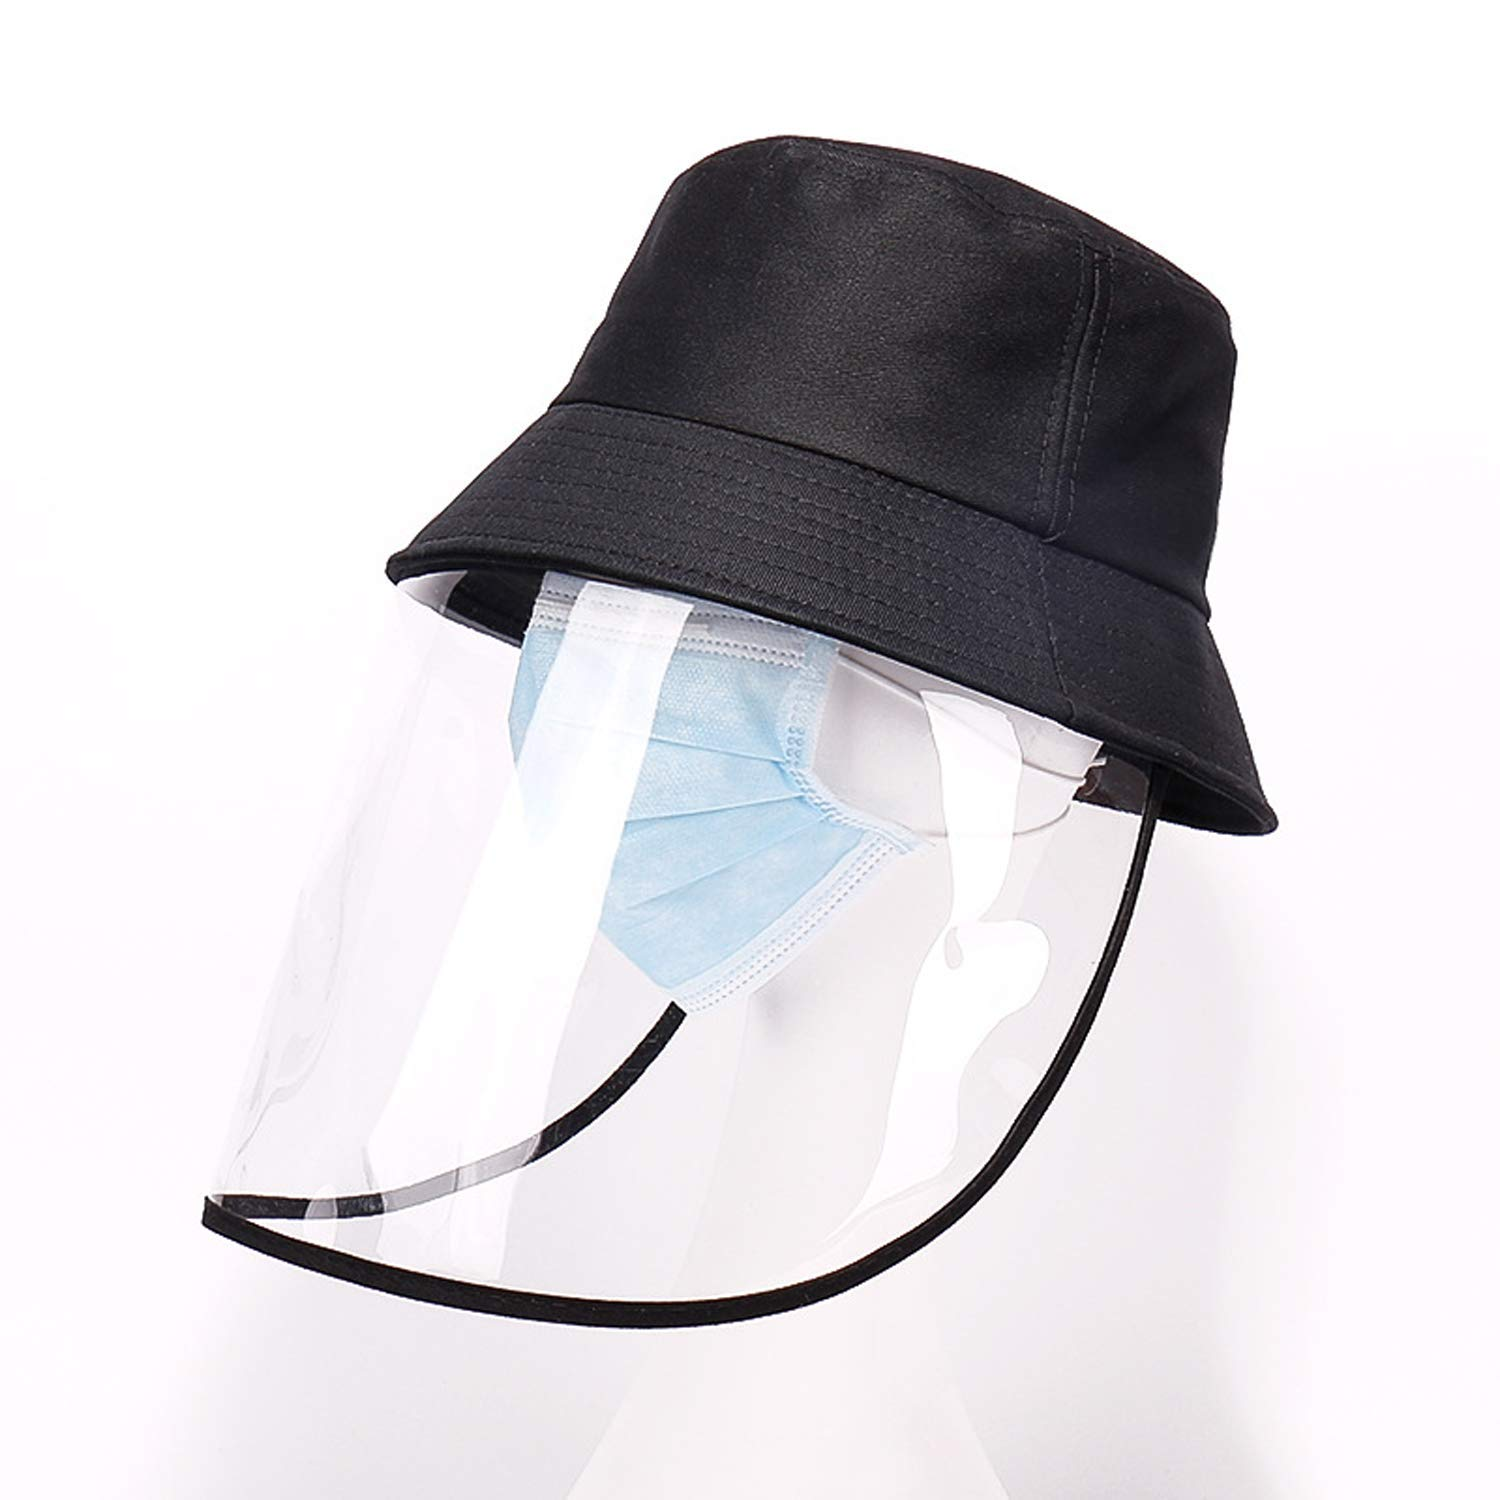 Skymecos Adult Mask Hat Anti-Spitting Protective Hat Cover Outdoor Fisherman Hat Adjustable Anti-Fog Saliva Particulate Splash Cap Hat